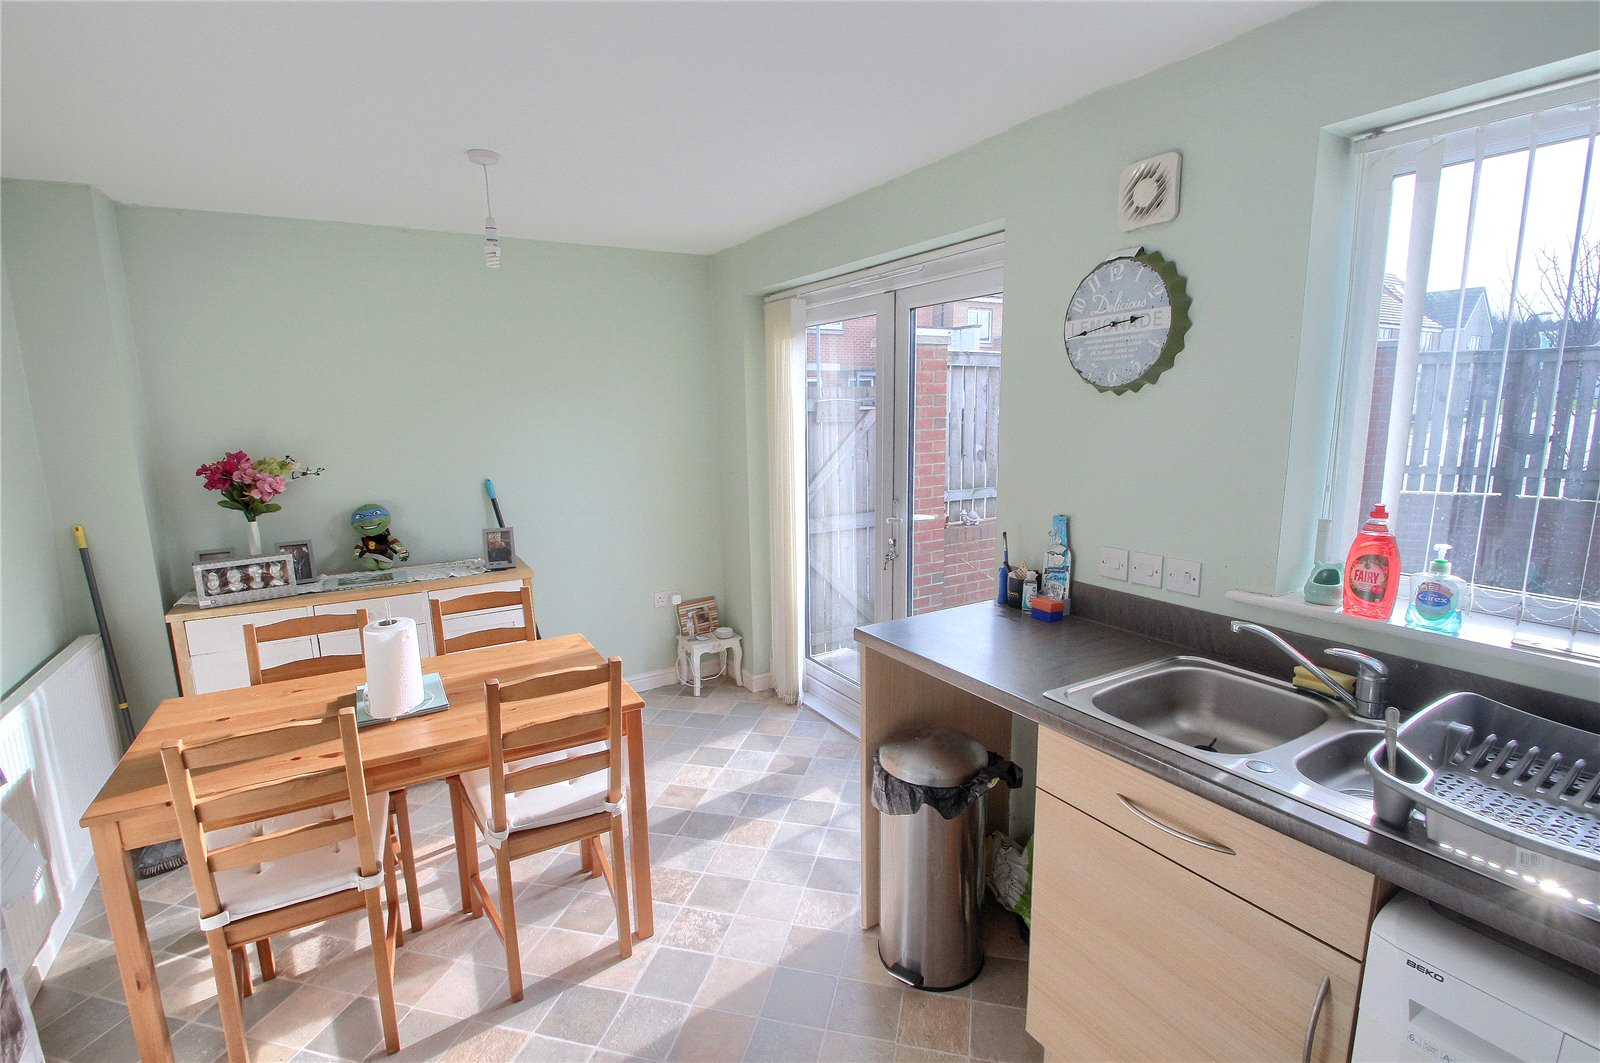 4 bed house for sale in Crimdon Beck Close, Whitewater Glade  - Property Image 2